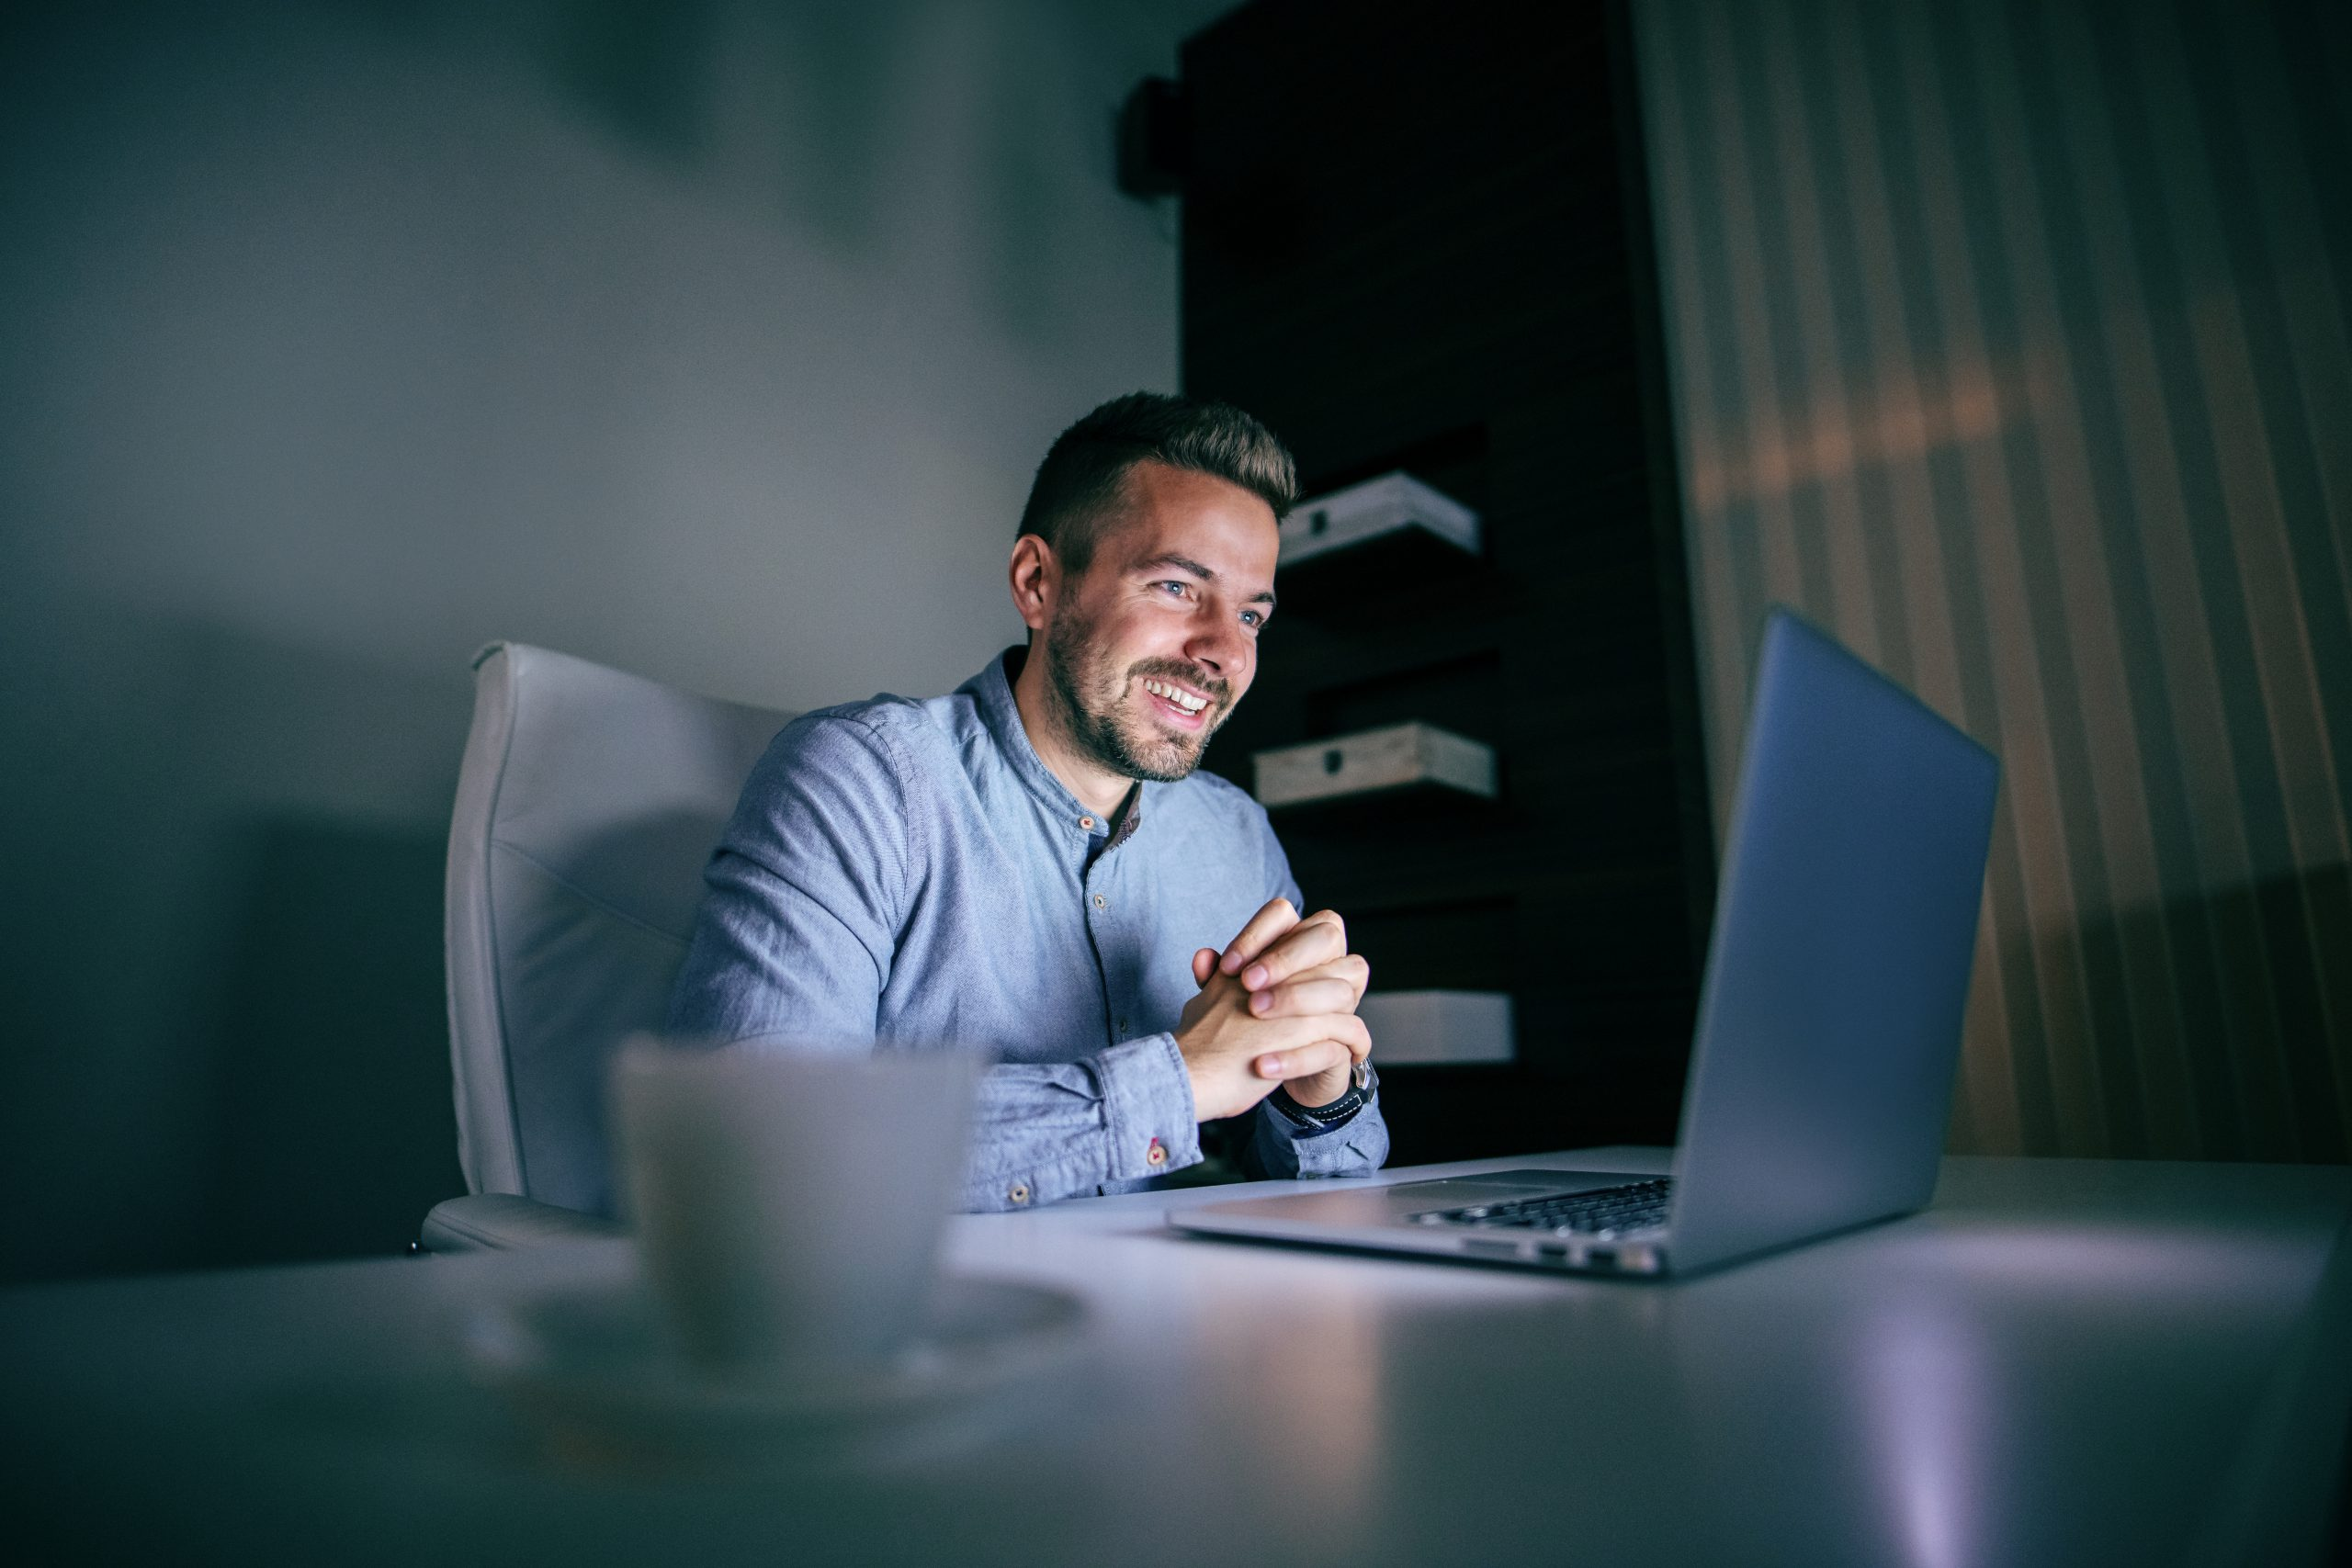 A productive businessman sitting and looking at a laptop with a happy demeanour